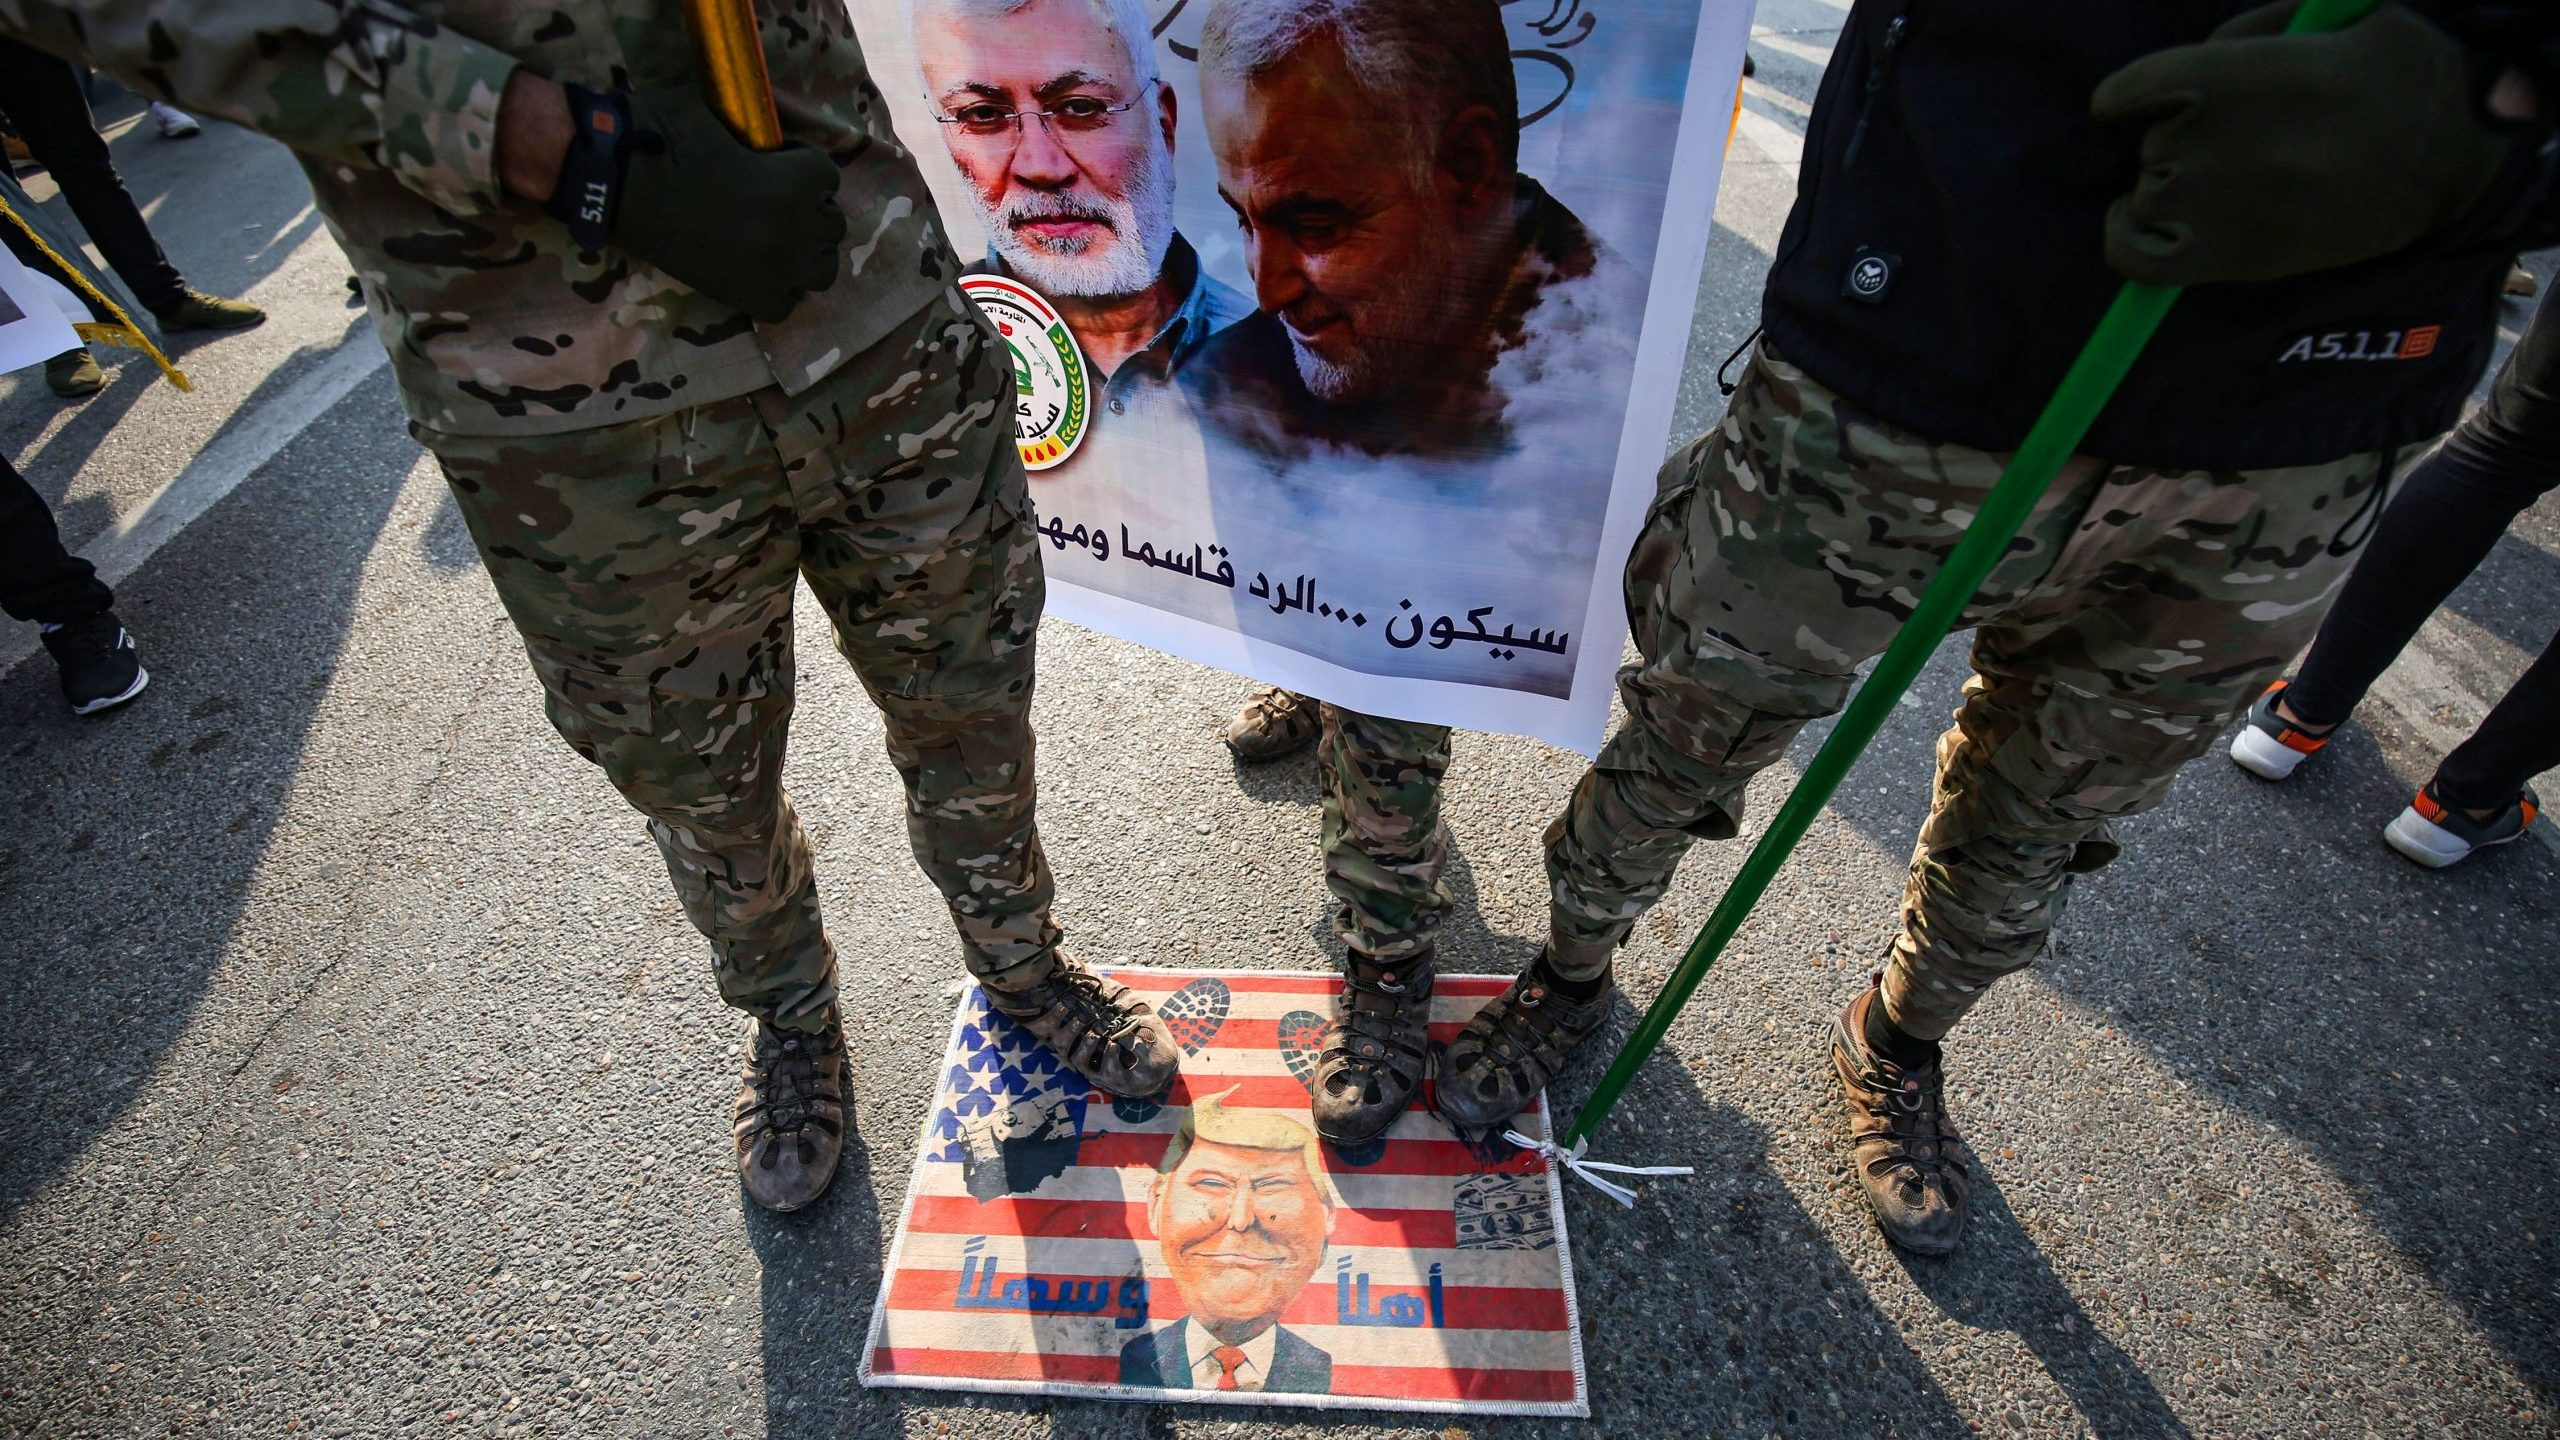 Members of the Hashed al-Shaabi paramilitary force step on a makeshift U.S. flag bearing a caricature of Donald Trump during the funeral procession of Abu Mahdi al-Muhandis, Qassem Soleimani and eight others in the capital Baghdad's district of al-Jadriya, near the high-security Green Zone, on Jan. 4, 2020. (Credit: AHMAD AL-RUBAYE/AFP via Getty Images)